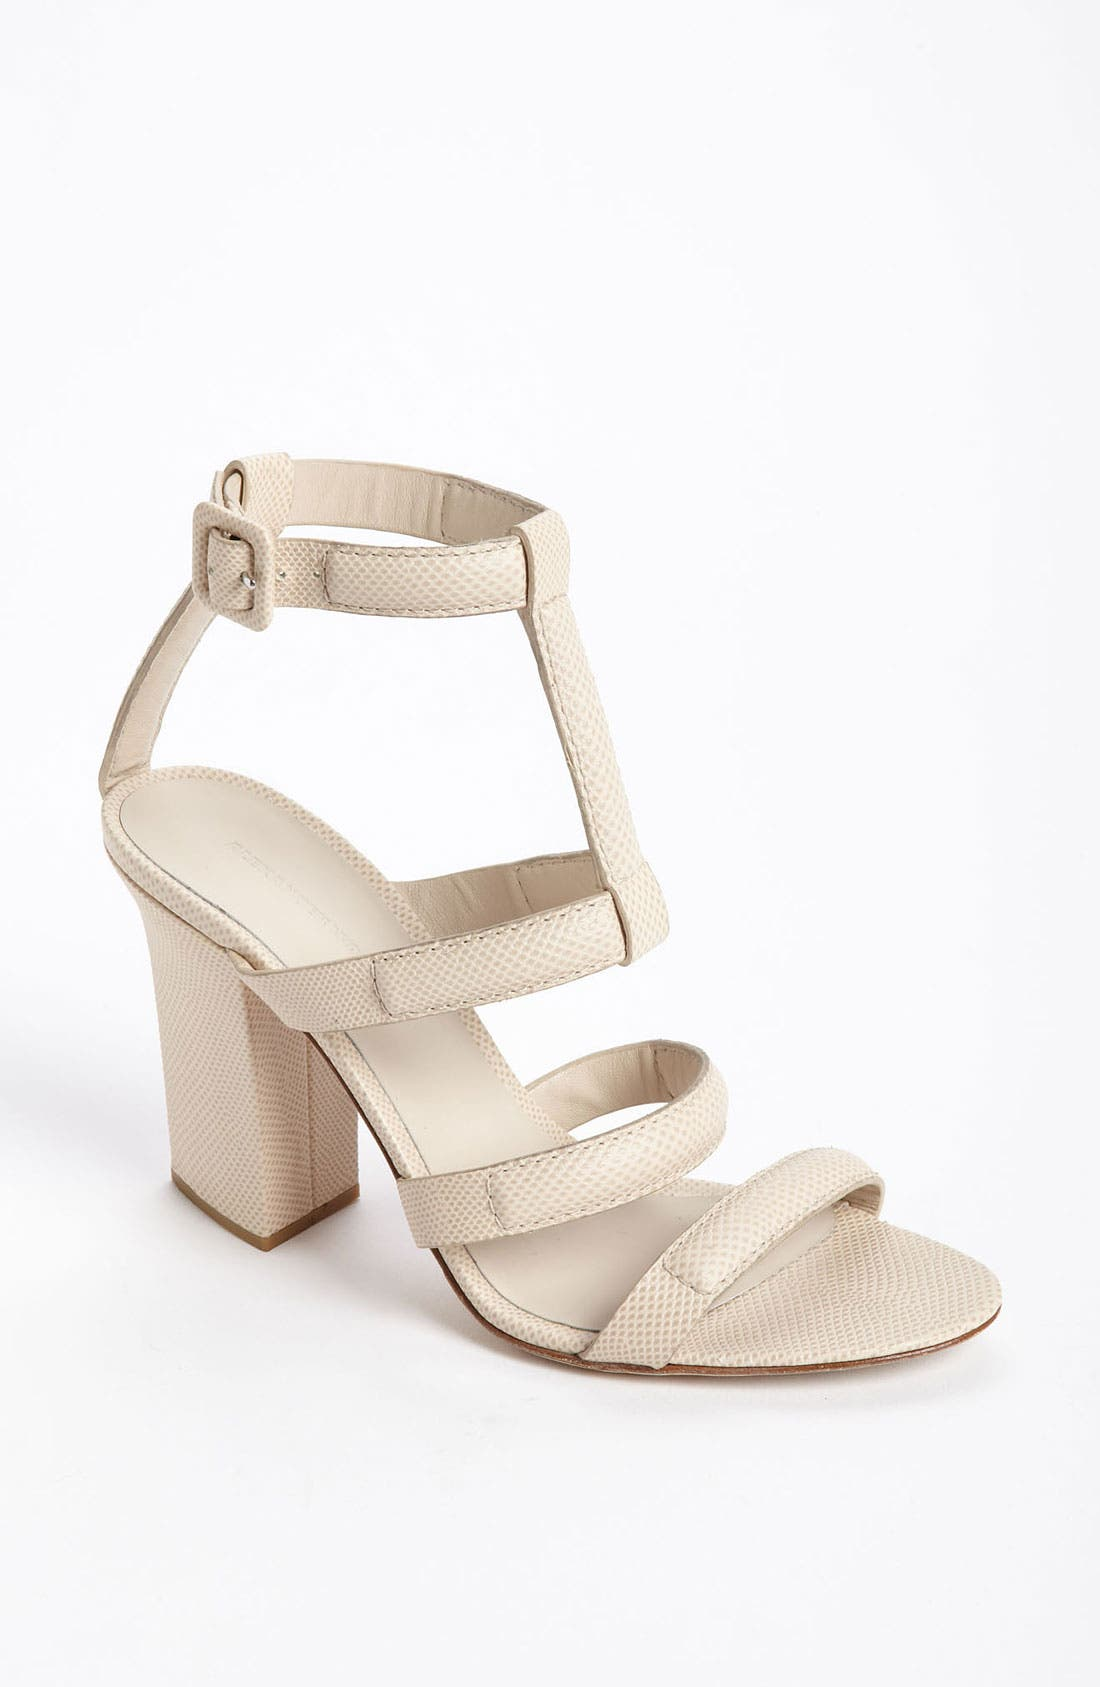 Alternate Image 1 Selected - Alexander Wang 'Anjelika' Sandal